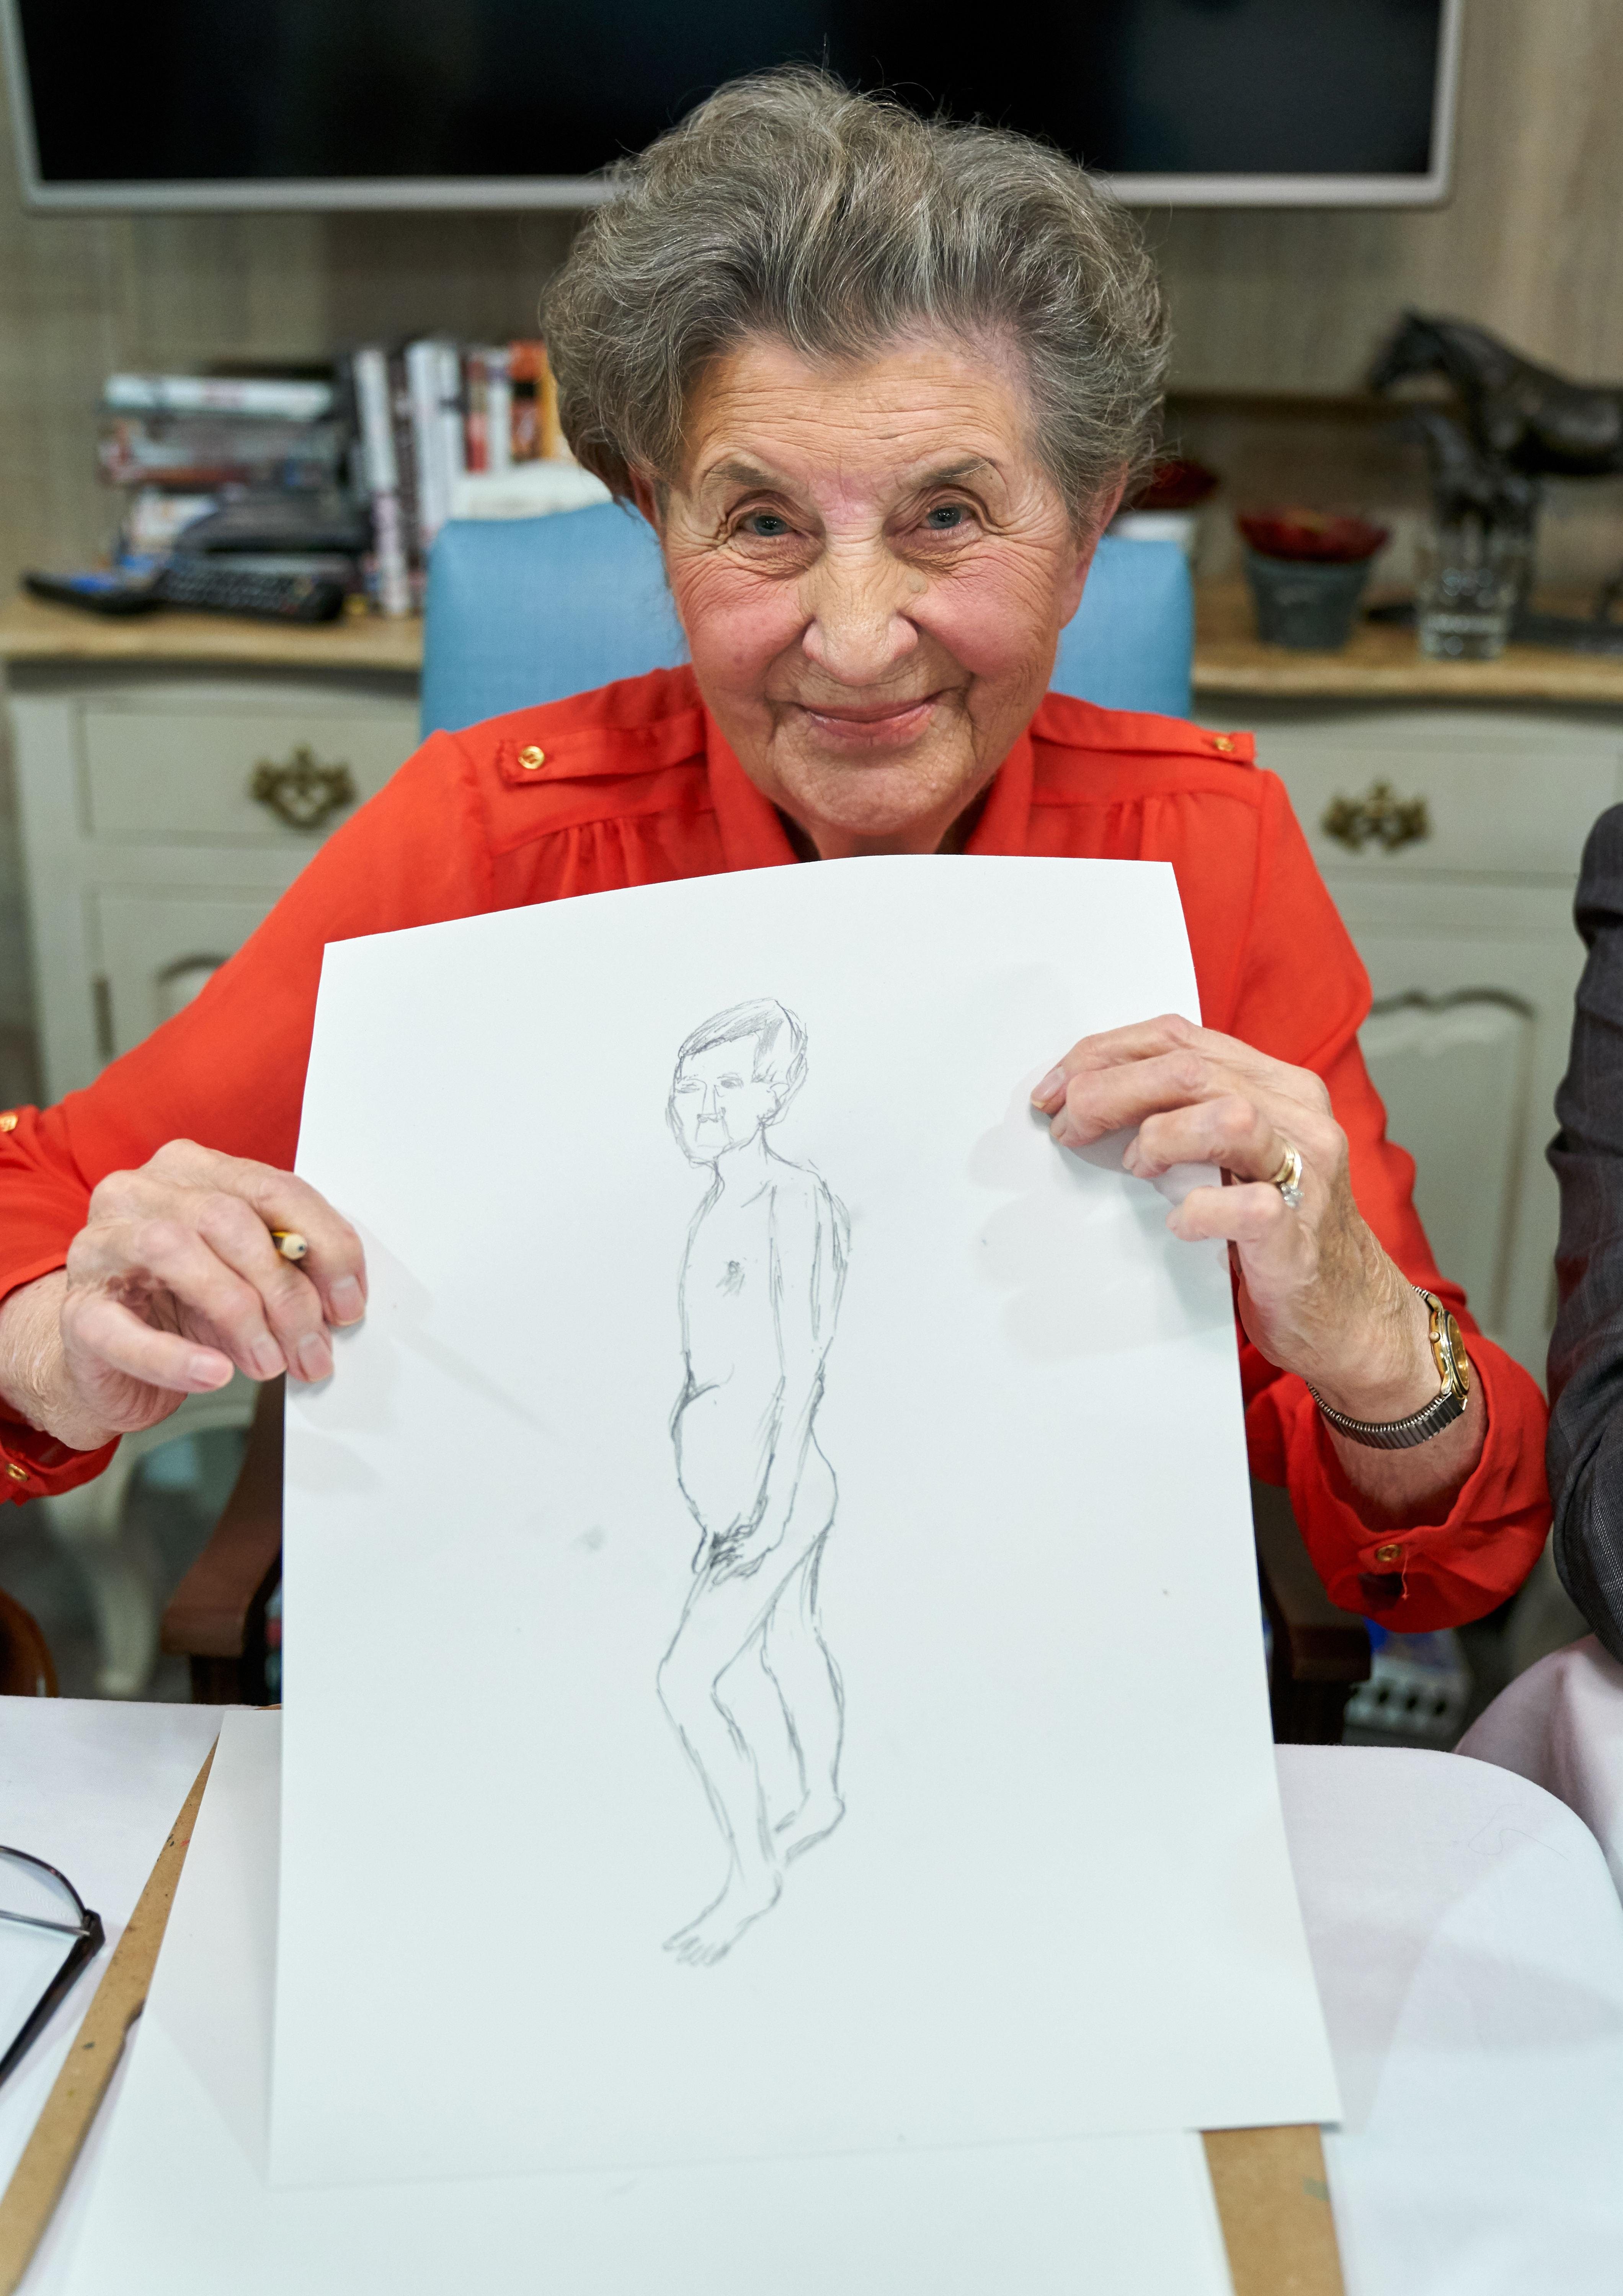 A care home resident reveals her finished pencil sketch. [Photo: Simon Jacobs]